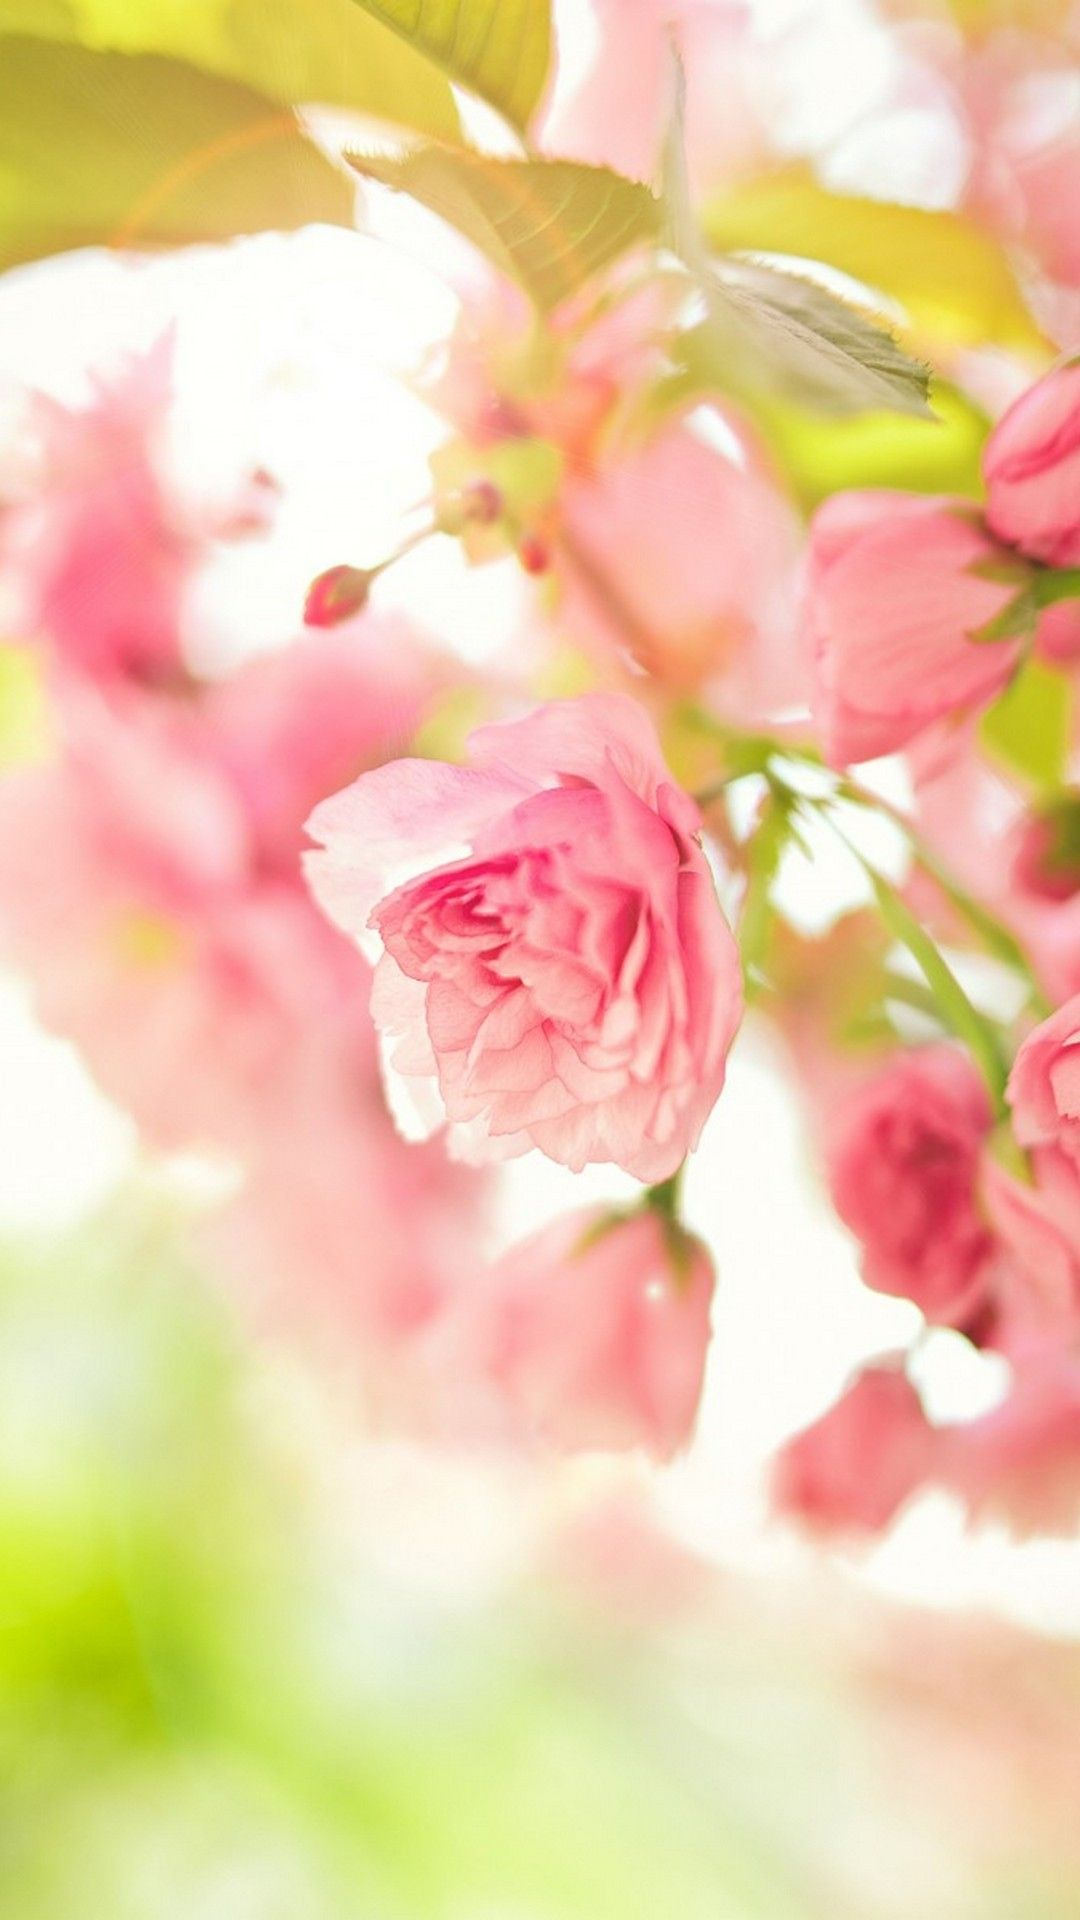 Spring Season Mobile Wallpaper Hd Best Hd Wallpapers In